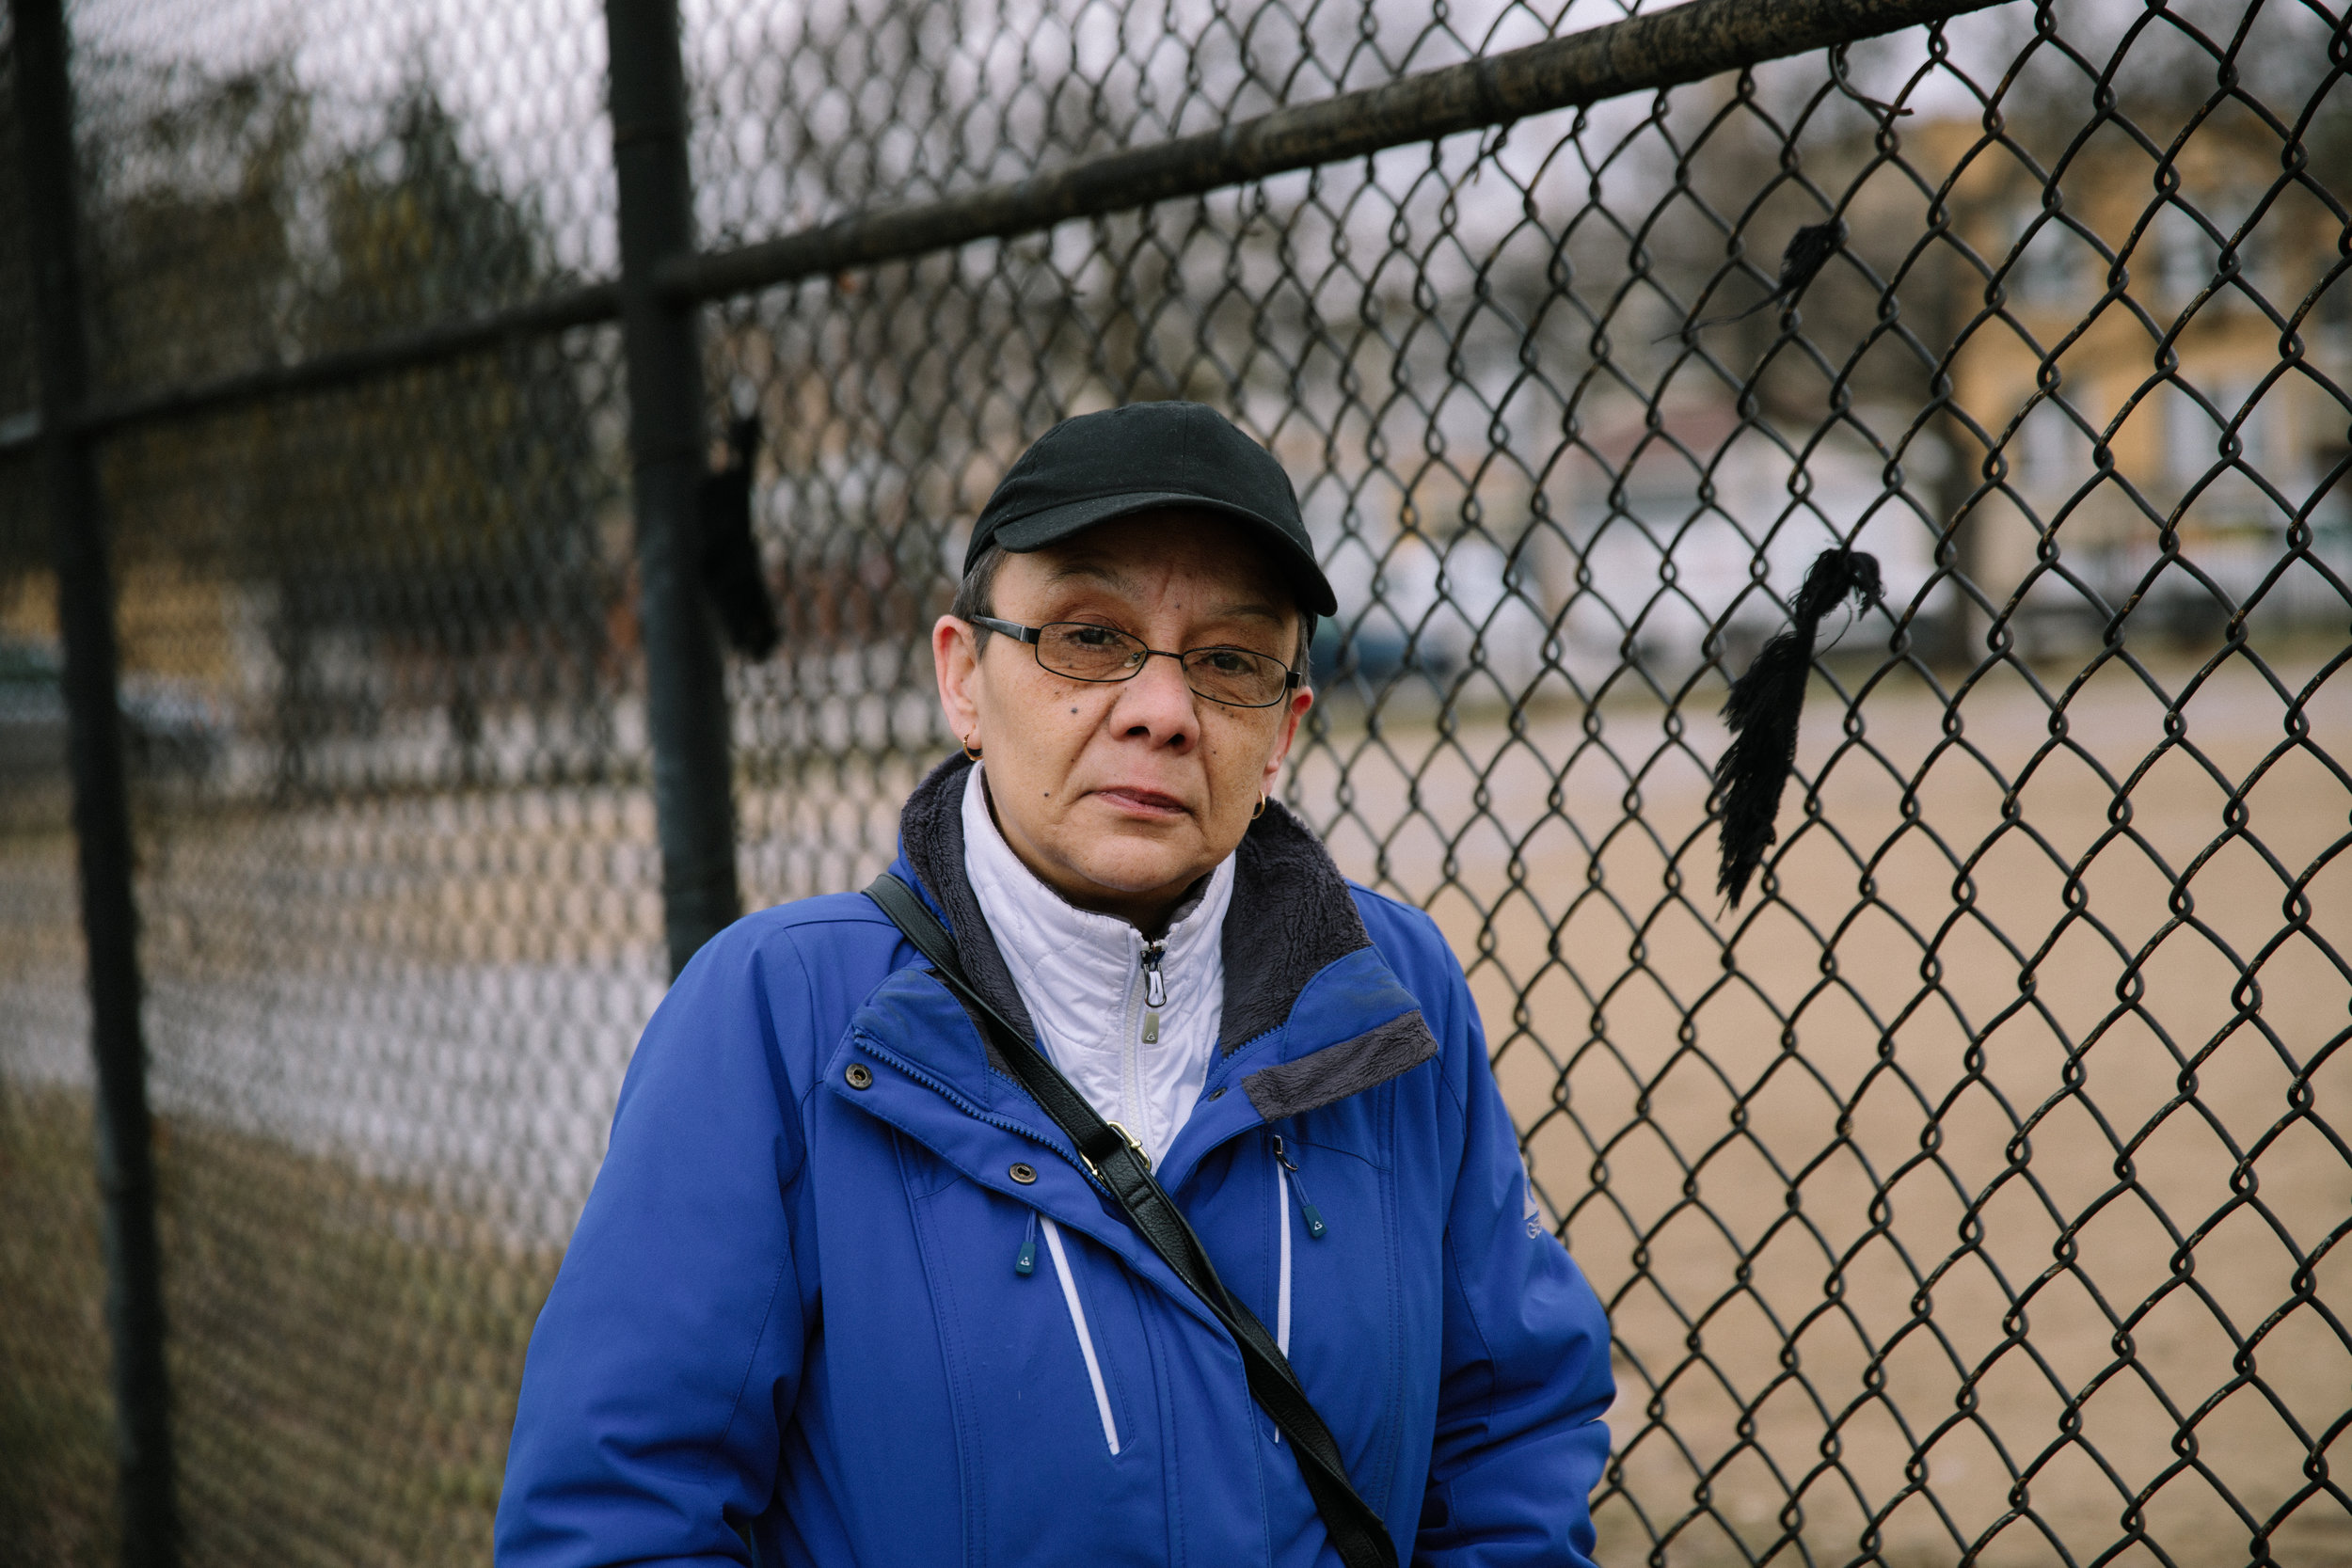 Elizabeth Ramirez stands in Blackhawk Park in Chicago's Belmont-Cragin neighborhood. Elizabeth's late son, Dee Jay Rodriguez, attended his first sports camp at Blackhawk Park and there is an honorary street named after him along the park's border. Dee Jay was shot and killed in October of 2011 as he celebrated his upcoming 24th birthday. In the wake of his death, Elizabeth helped found MCC partner organization, Parents for Peace and Justice, a support and advocacy organization for families who have lost children to gun violence in Chicago.